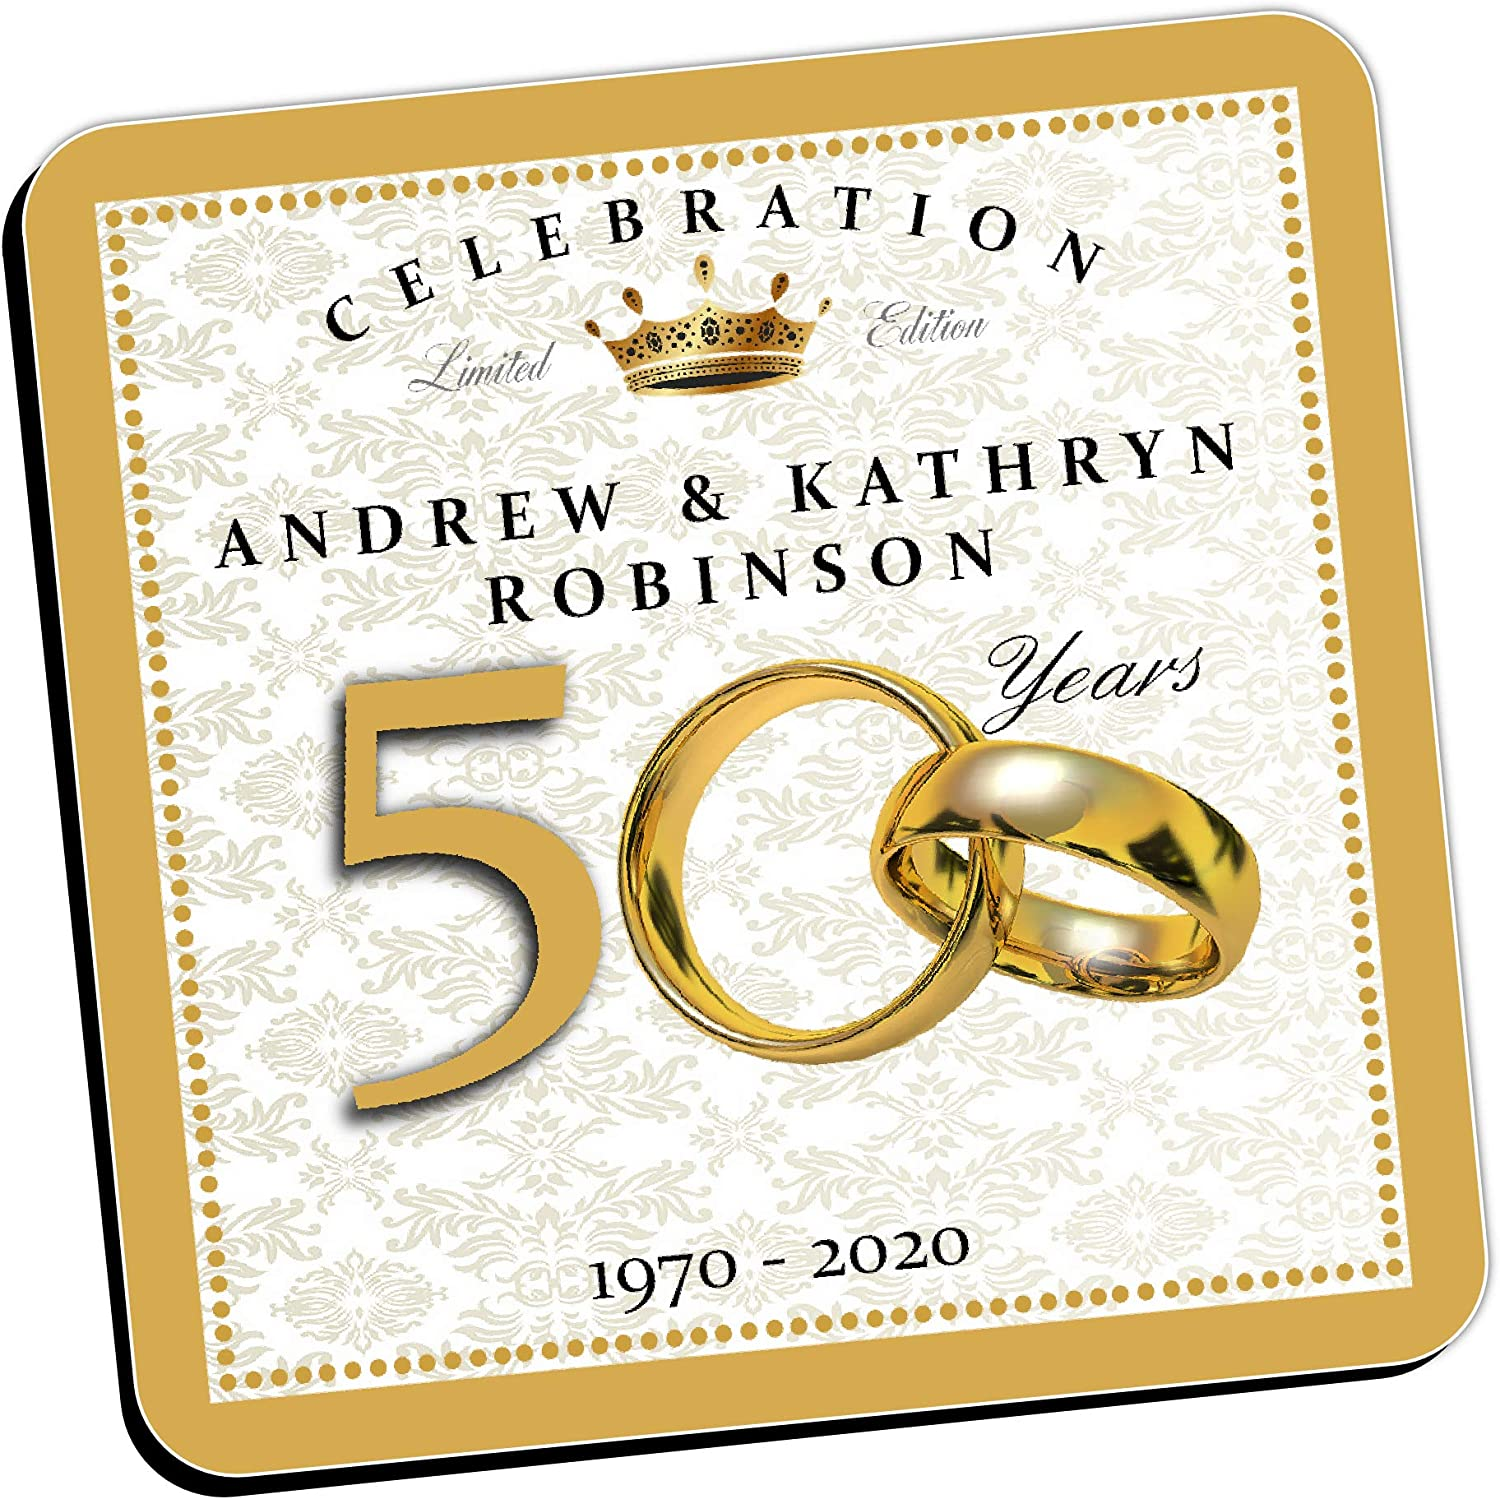 Personalised Coasters Golden 50th Wedding Anniversary Wine Drinks Tea Coffee Mat Qty 1 Home Gift Present Ideas For Him Her N3 Amazon Co Uk Kitchen Home